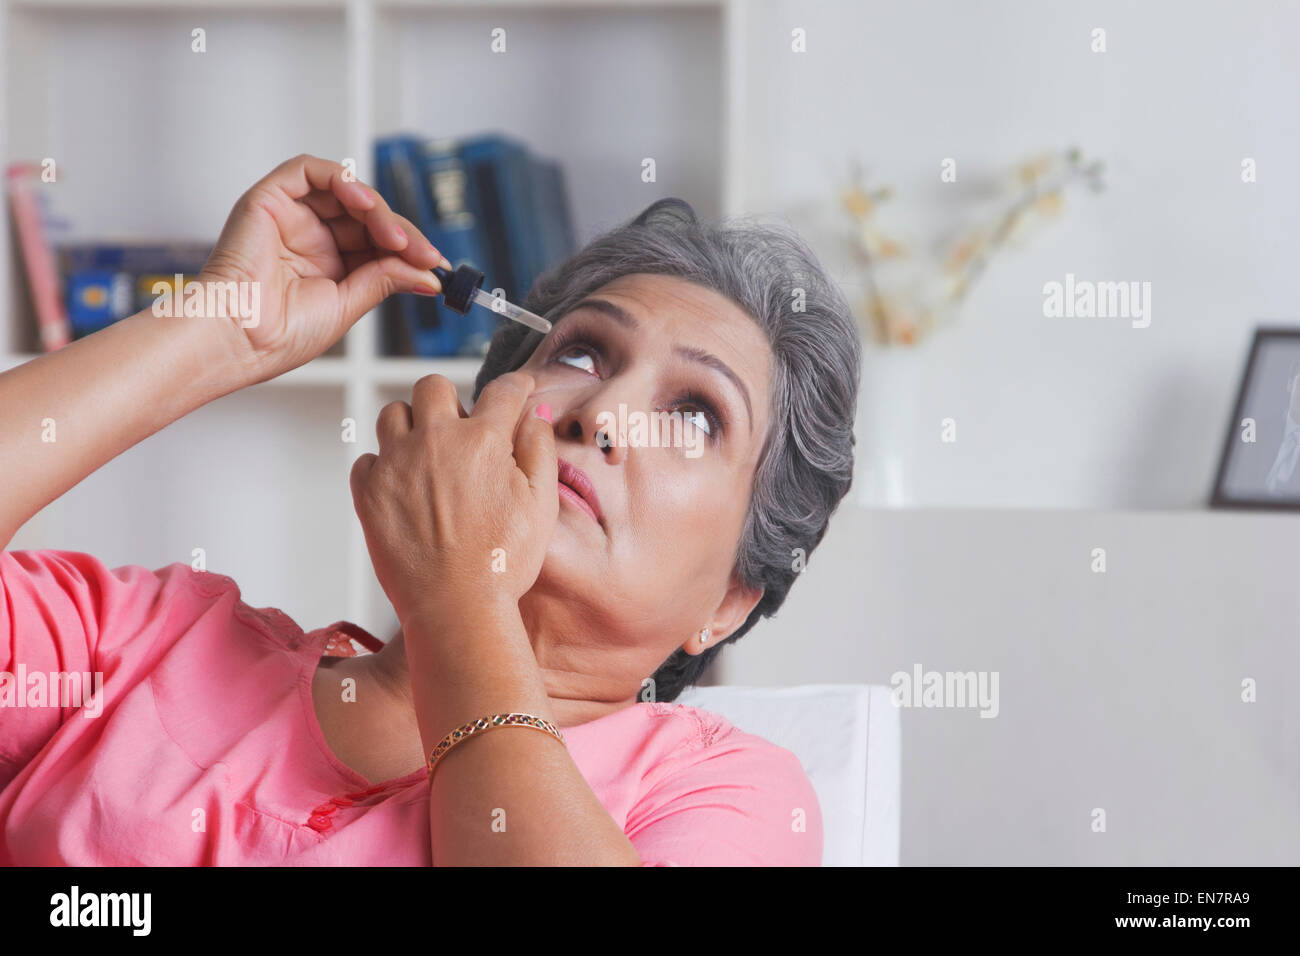 Old woman putting eye drops Stock Photo: 81921233 - Alamy